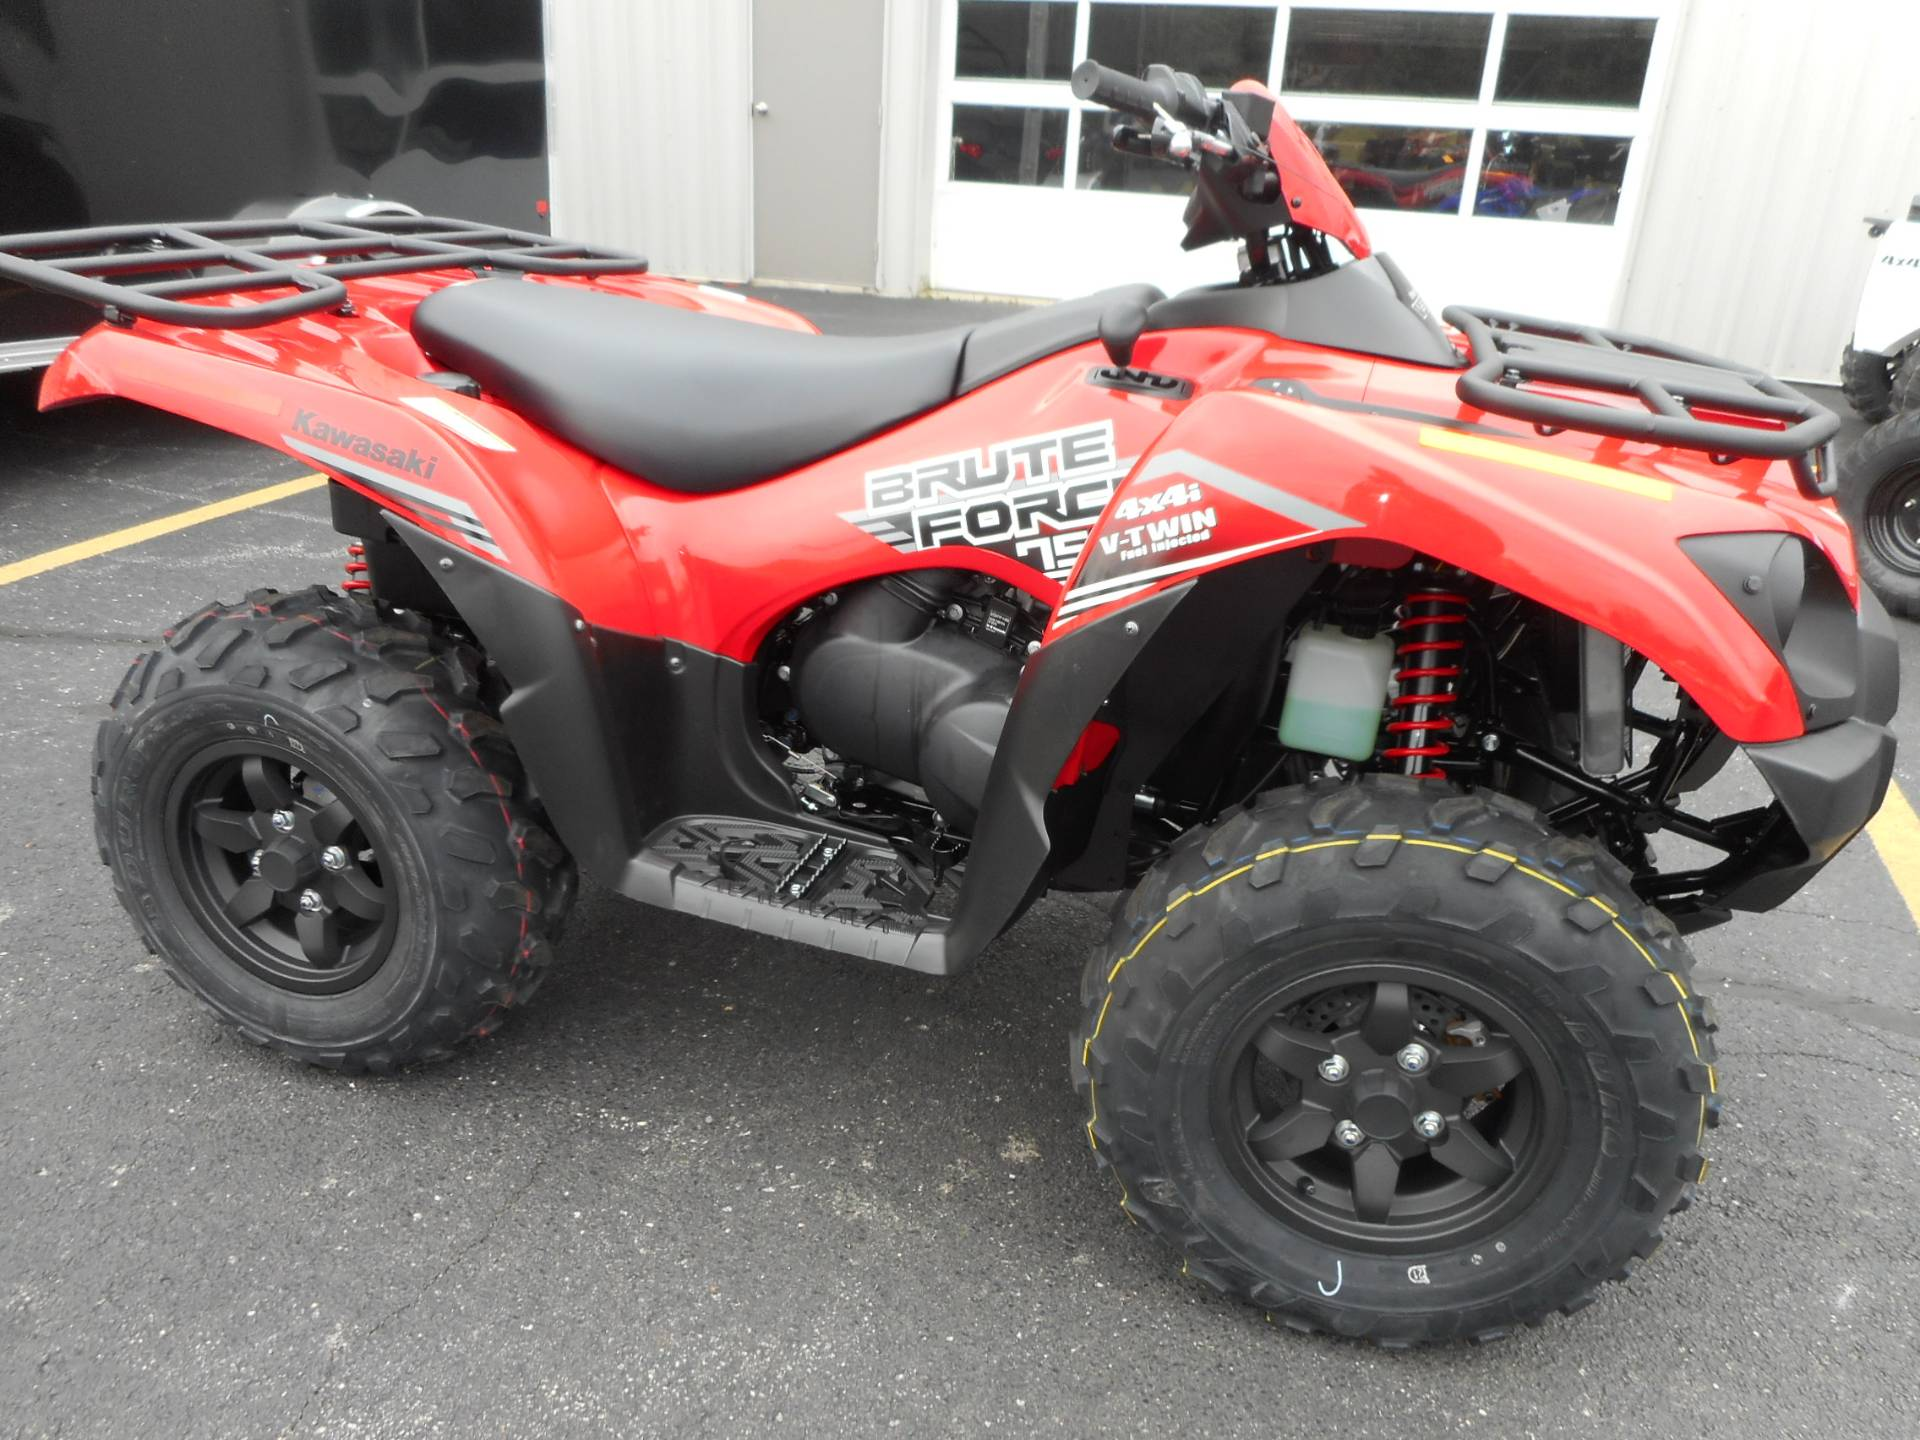 2020 Kawasaki Brute Force 750 4x4i in Belvidere, Illinois - Photo 1